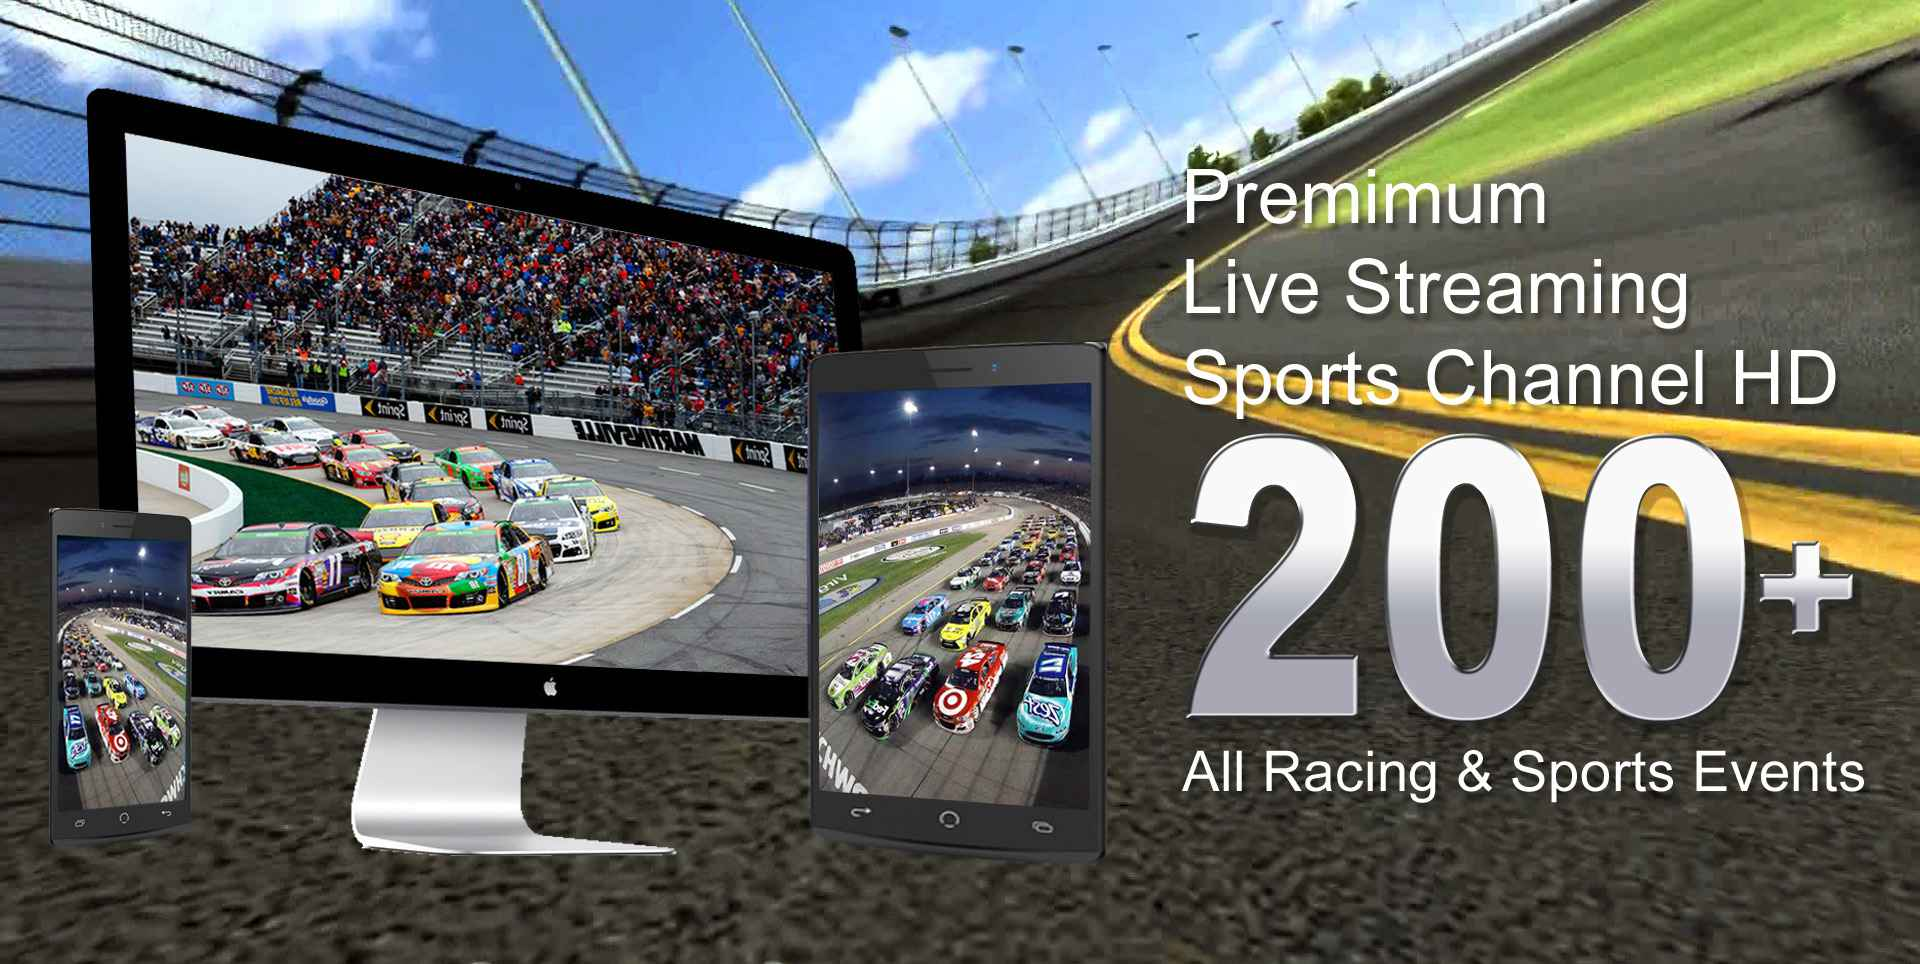 Where to Watch Bank of America 500 Live